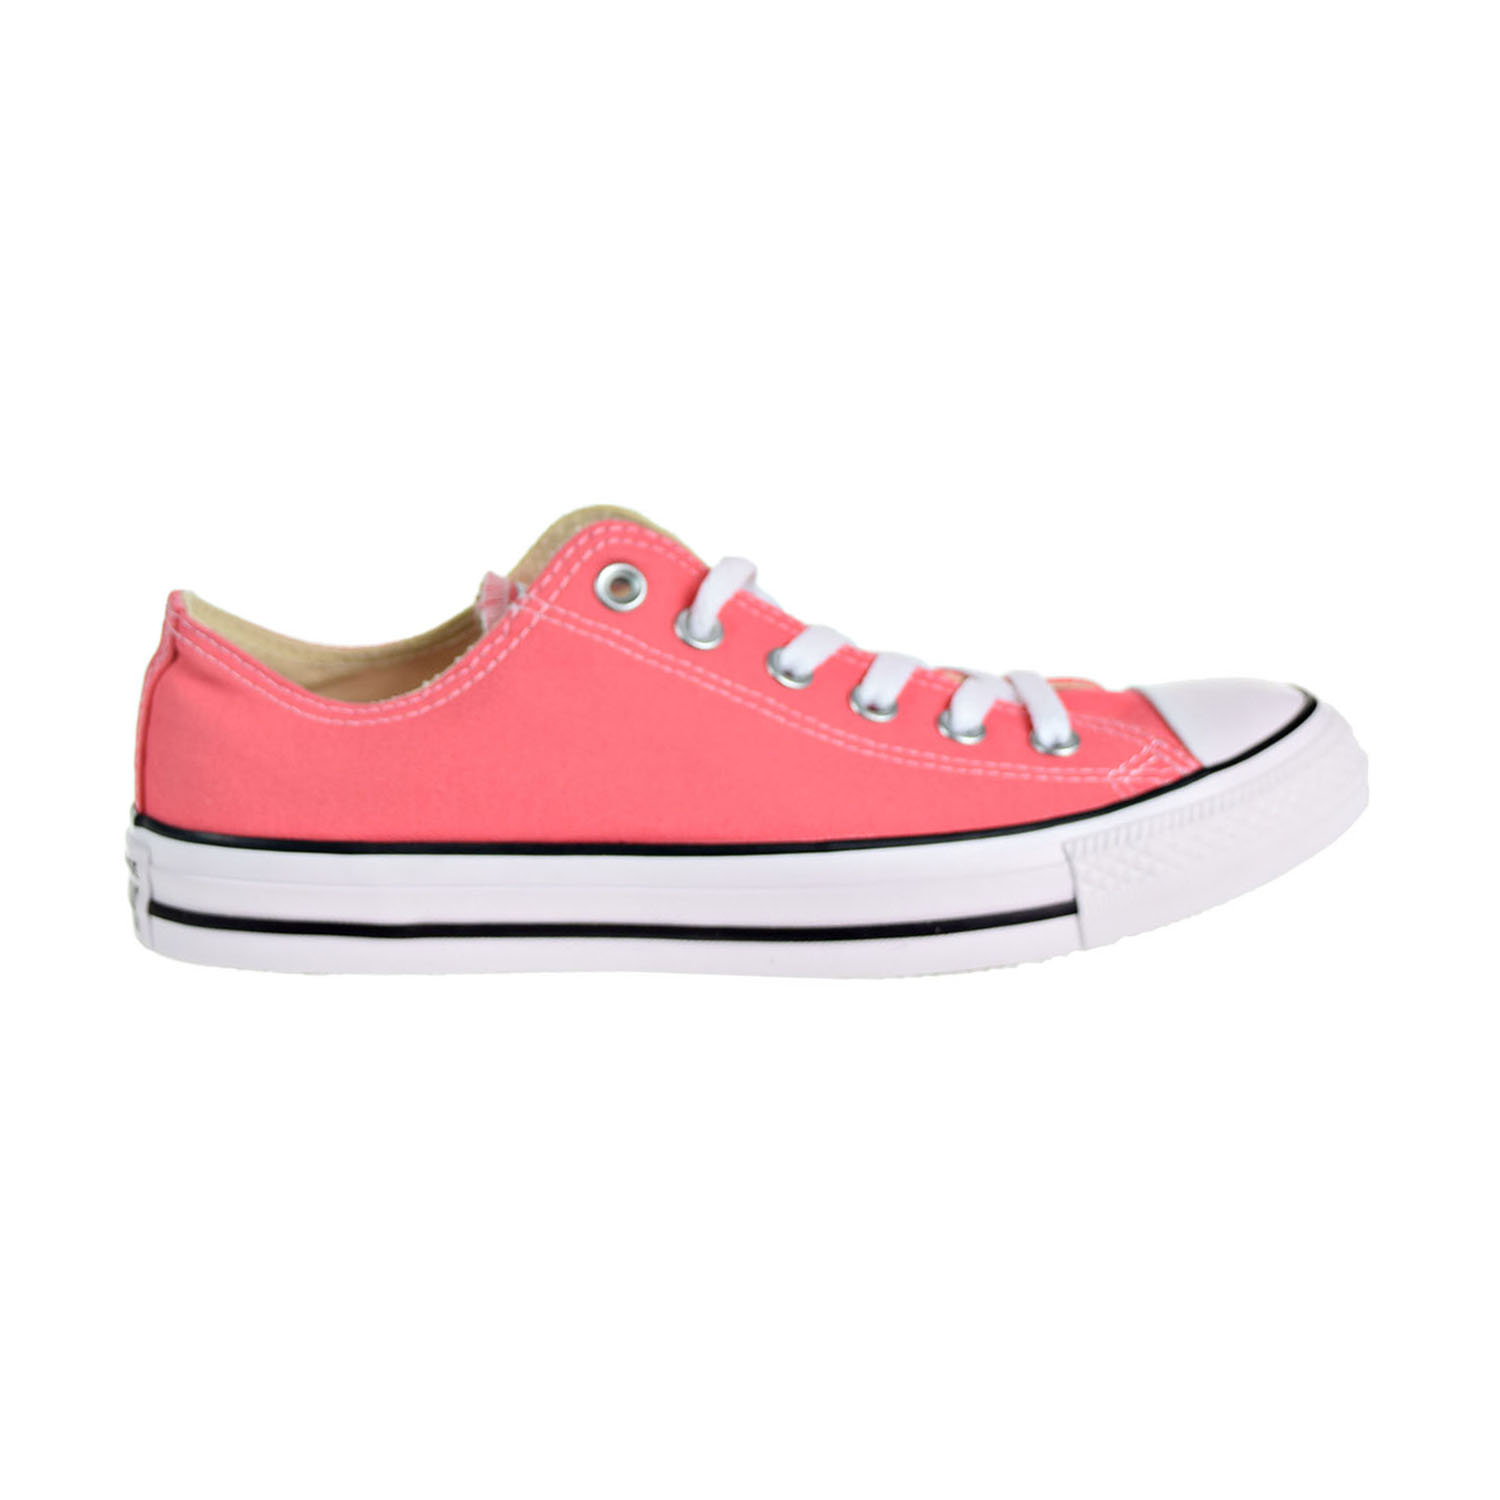 2c8f965c58d1b2 Details about Converse Chuck Taylor All Star Ox Men s Big Kids  Shoes Punch  Coral 161421F